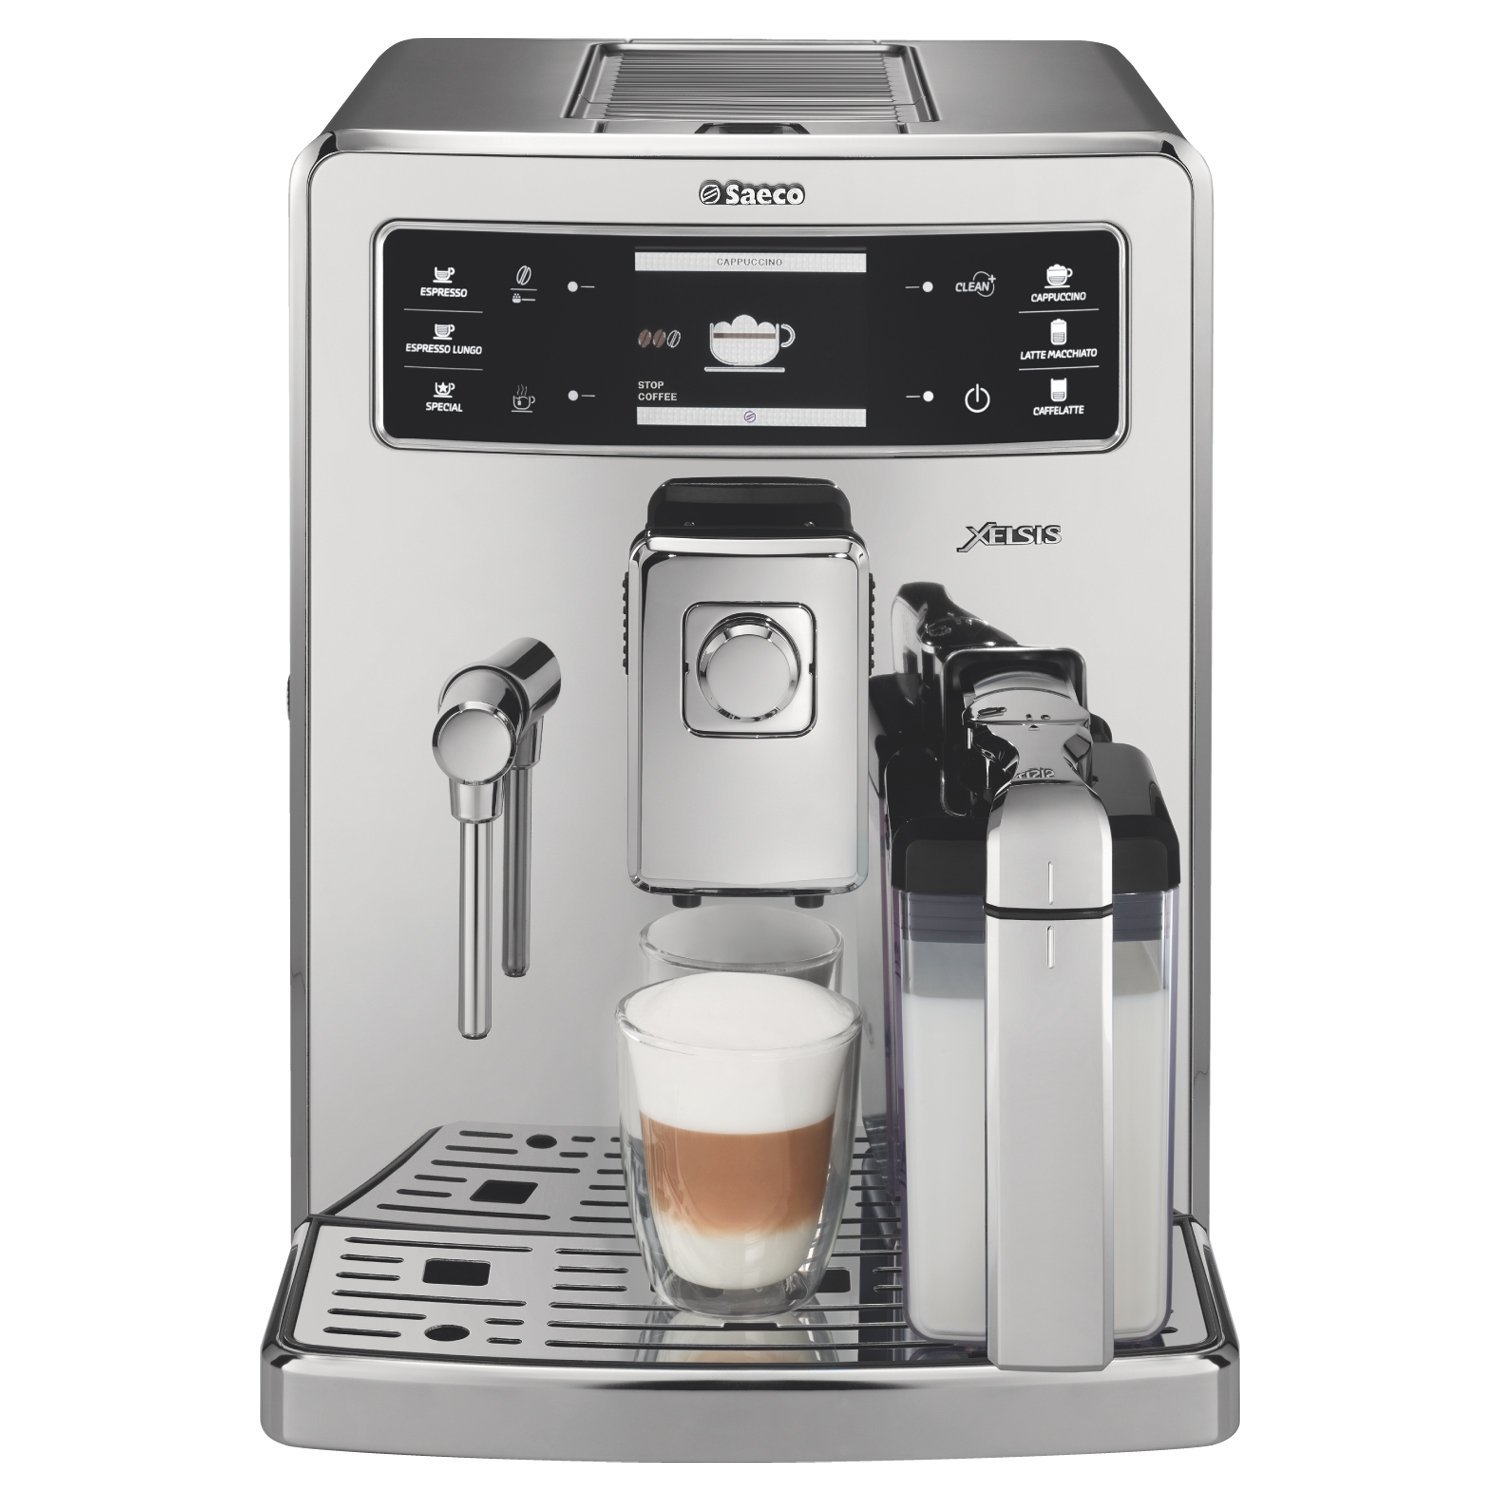 Philips Saeco RI9946 47 Xelsis Digital ID Automatic Espresso Machine Coffee Grinders For French Press